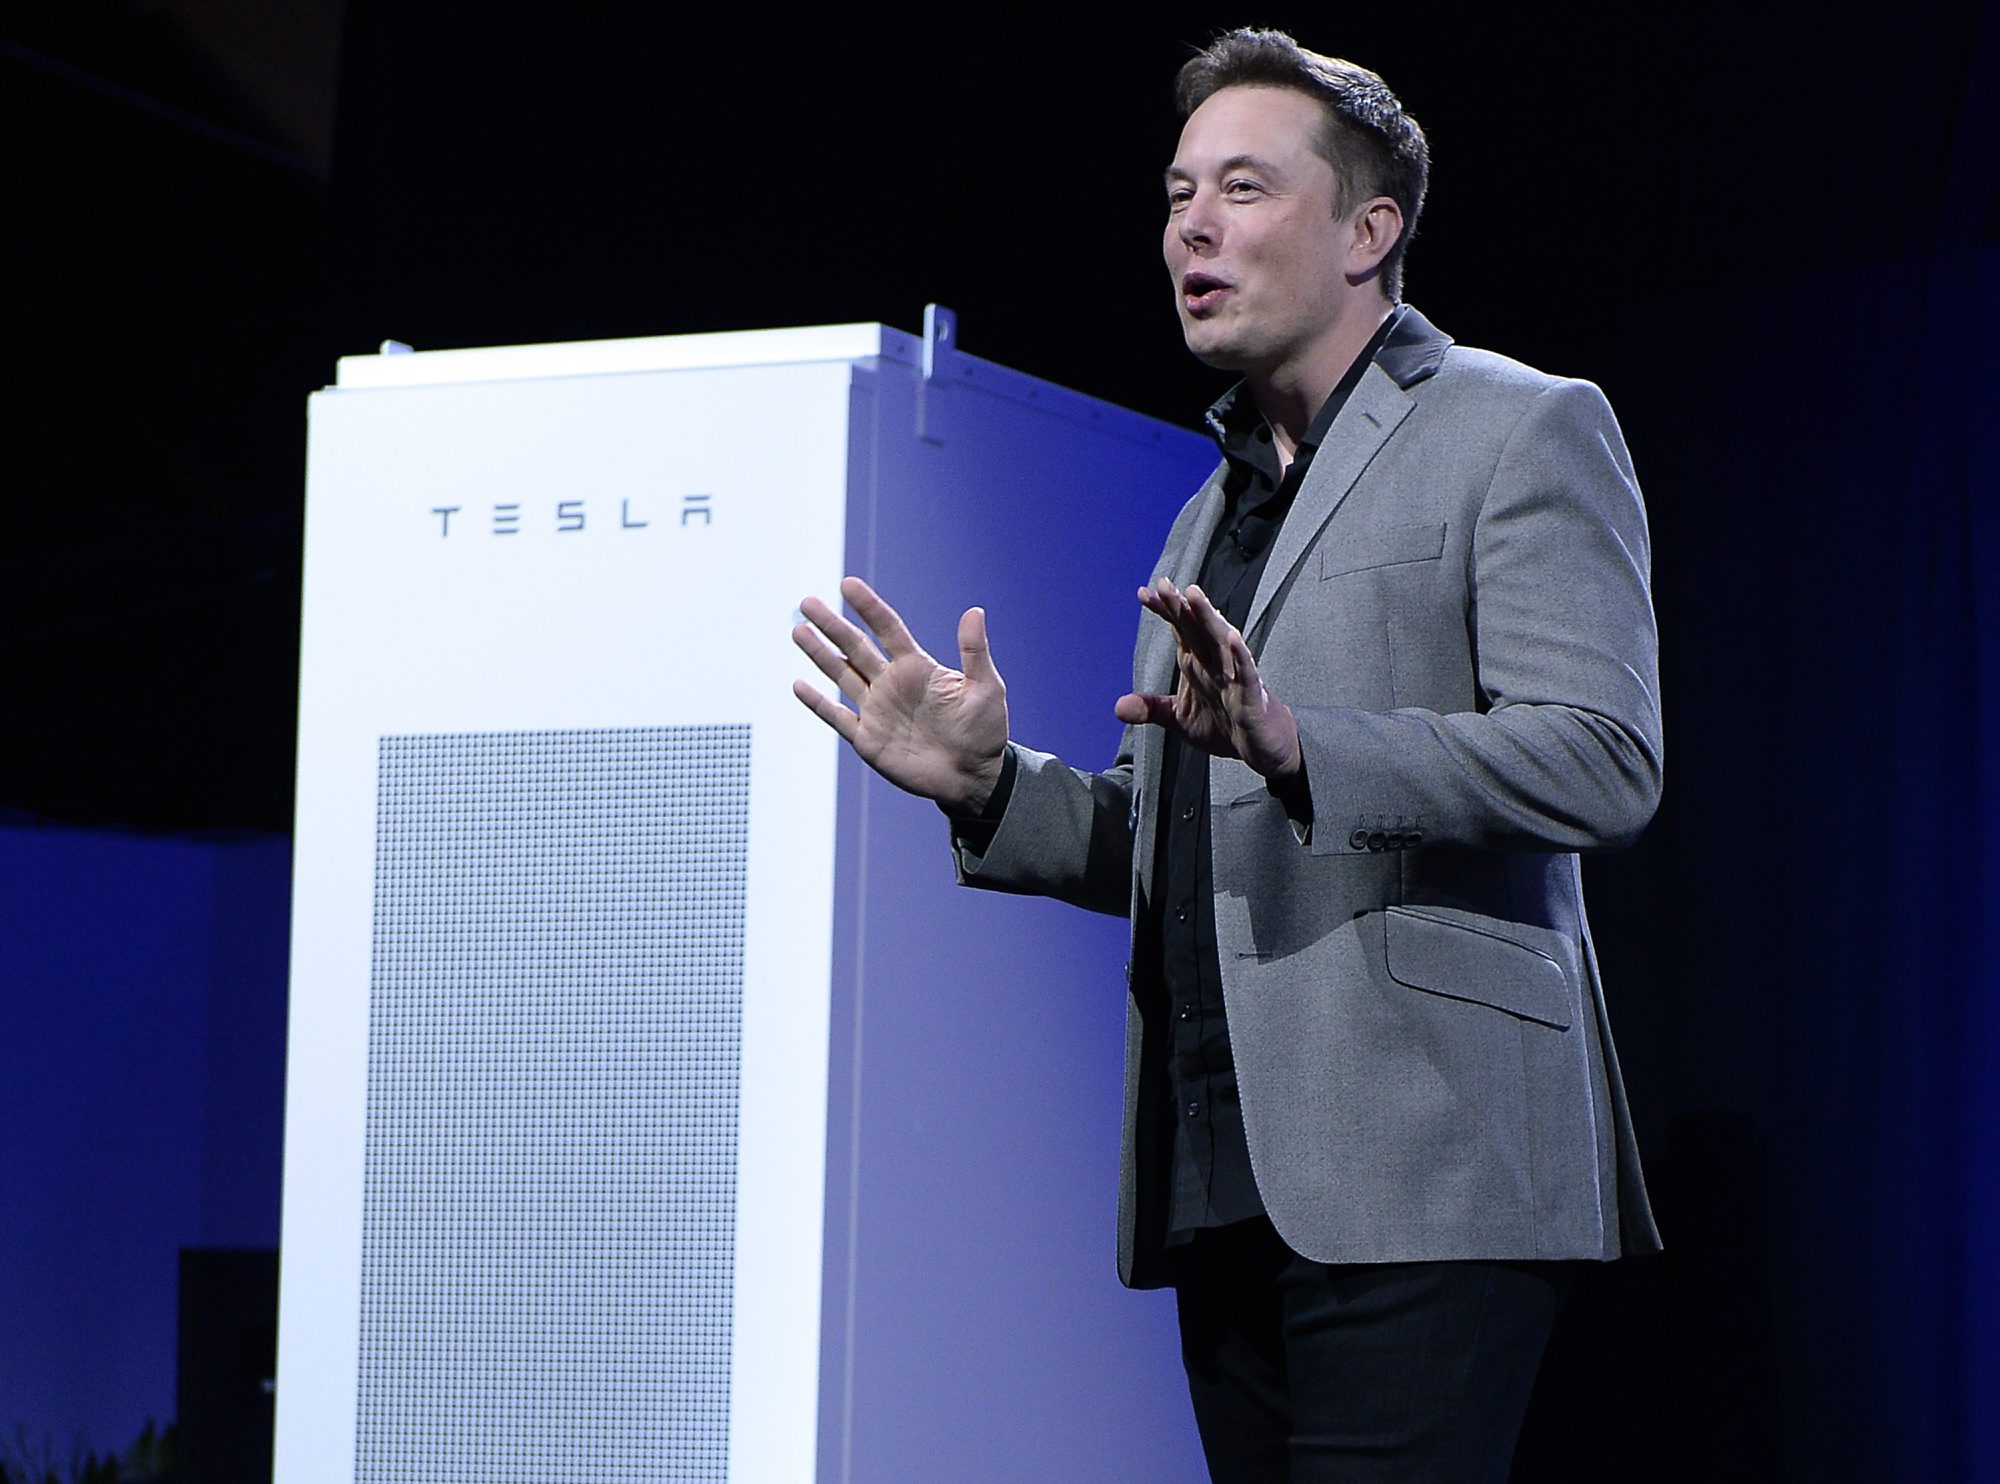 Elon Musk, CEO of Tesla Motors, unveils a lineup of batteries for homes, businesses and utilities in California in April 2015. (Kevork Djansezian/Getty Images)